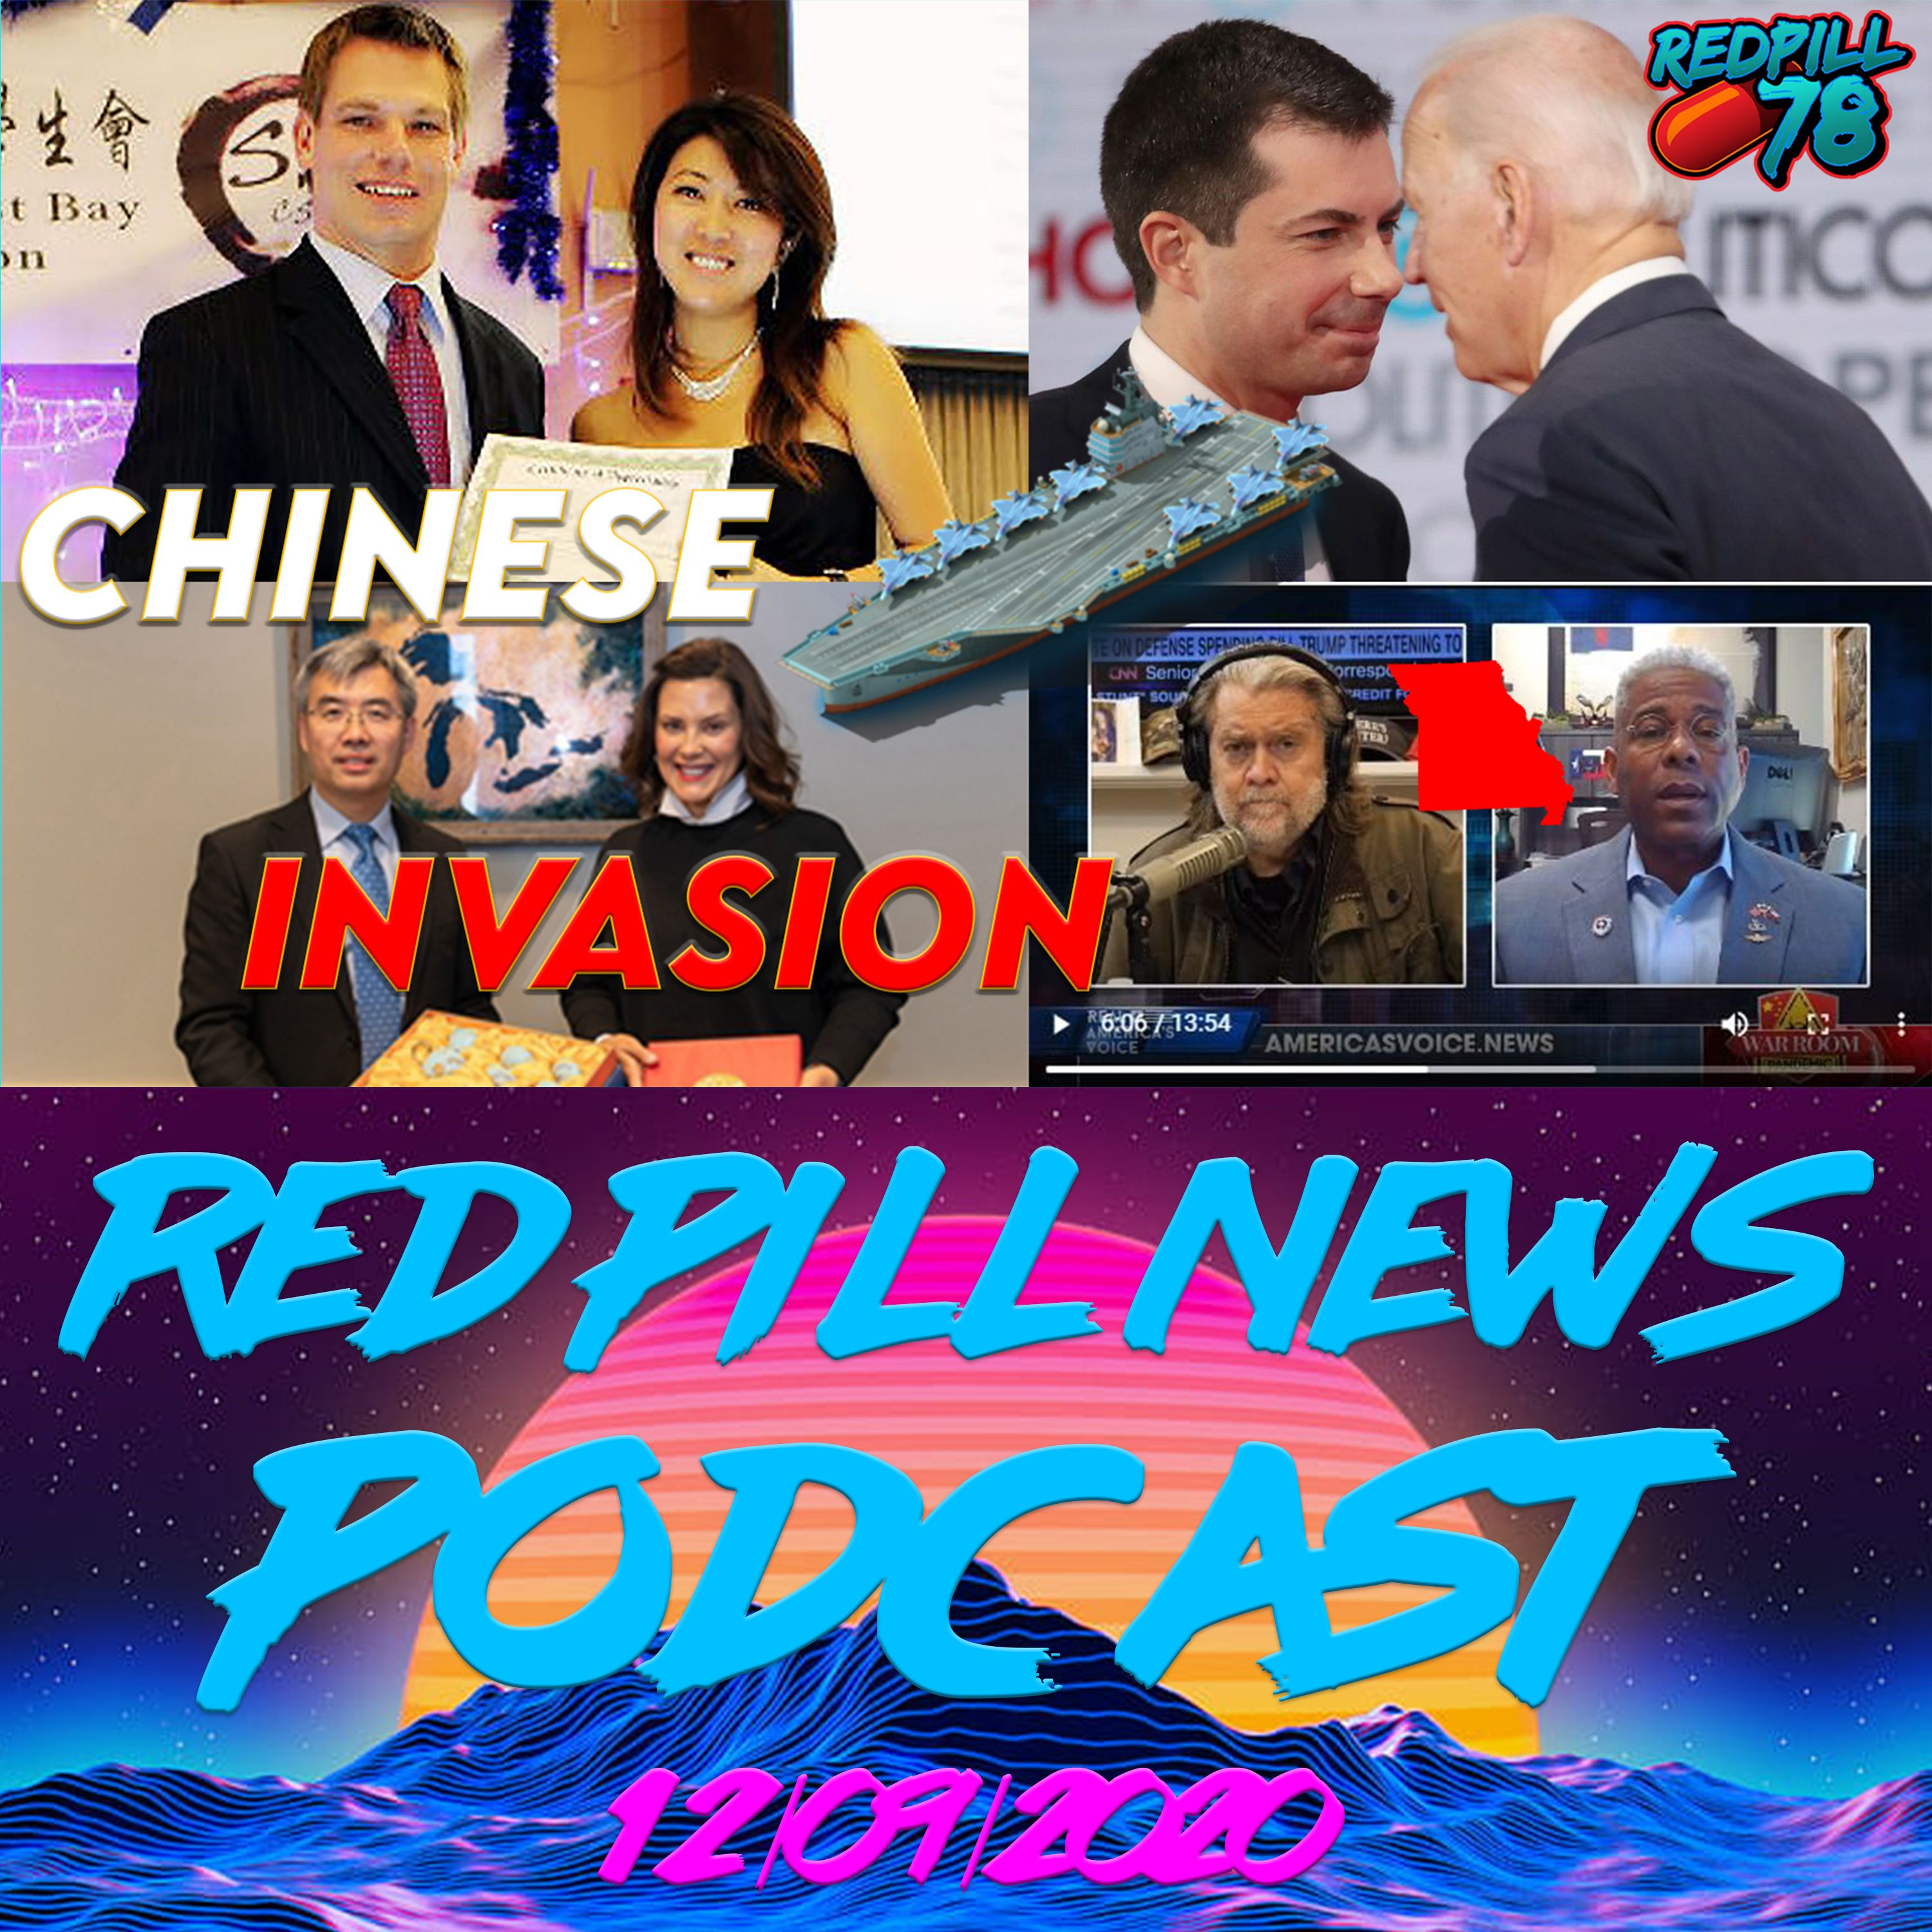 Preparing For A Chinese Invasion? Military Is the Only Way...